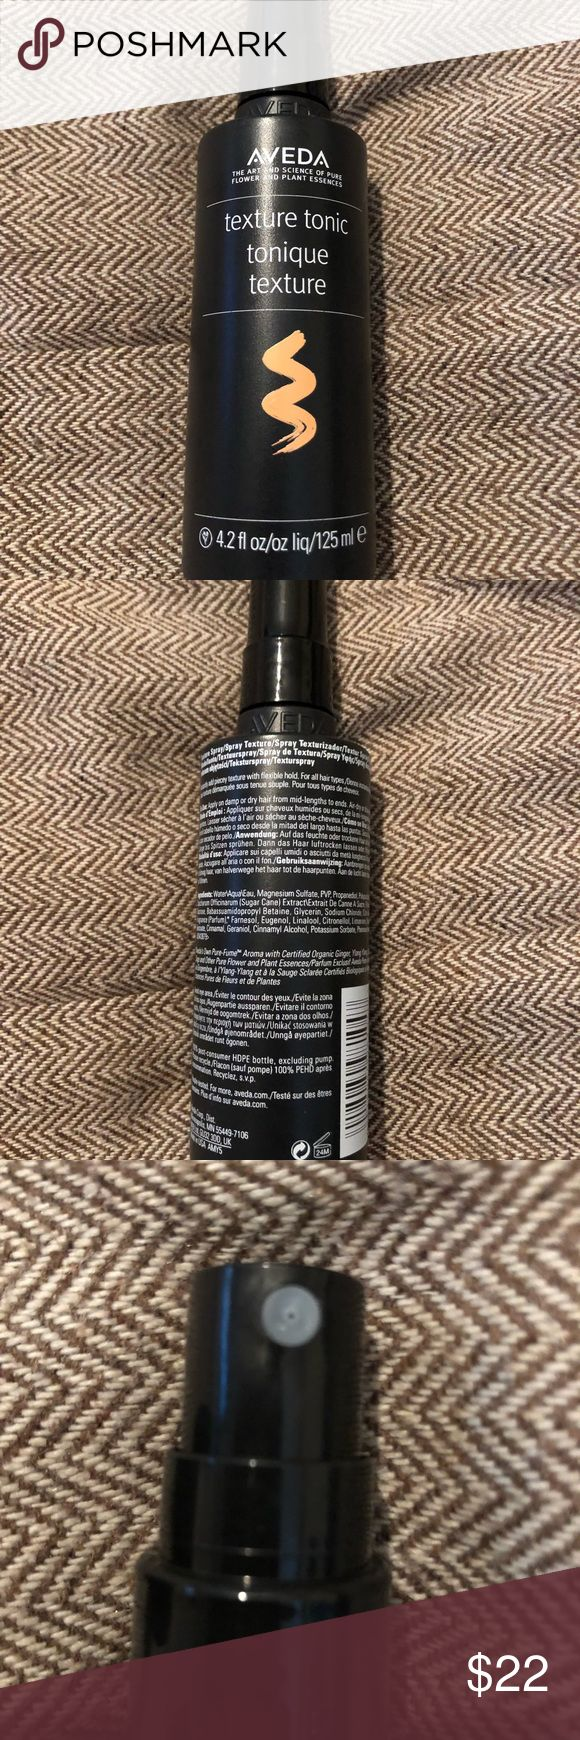 Acedo Texture tonic Perfect to get beachy waves. Never used. Aveda Other